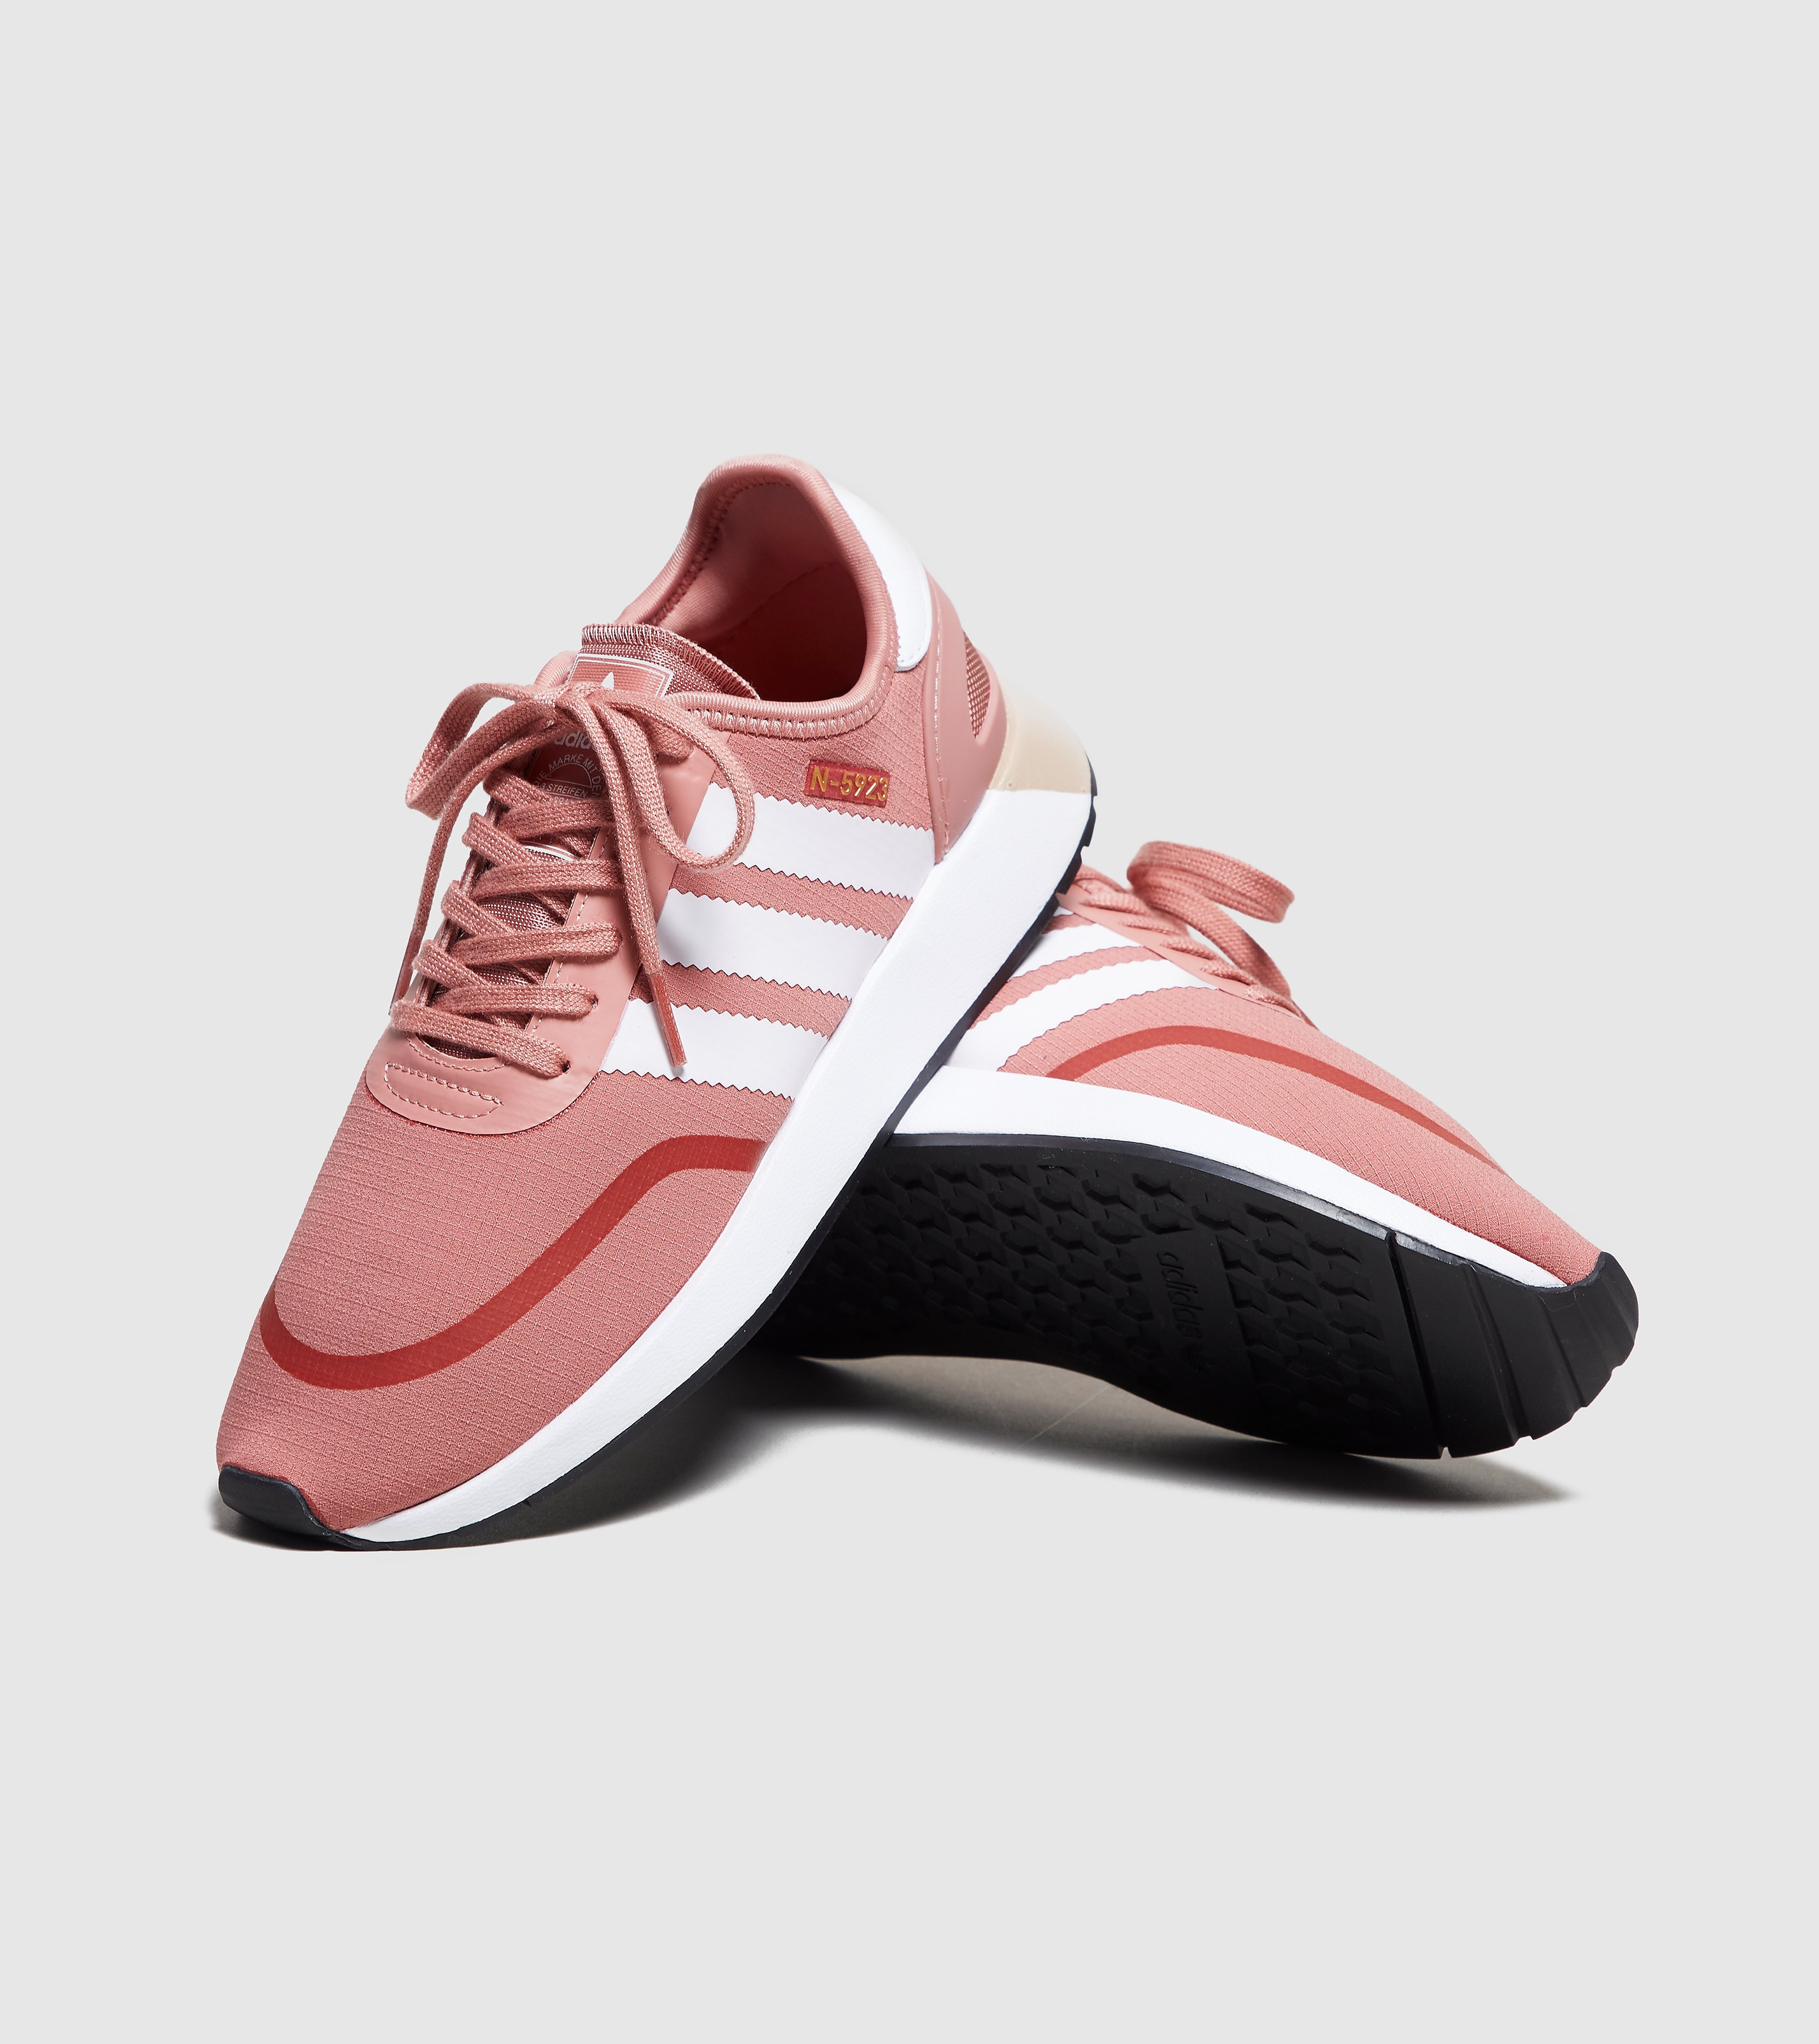 adidas Originals N-5923 Women's